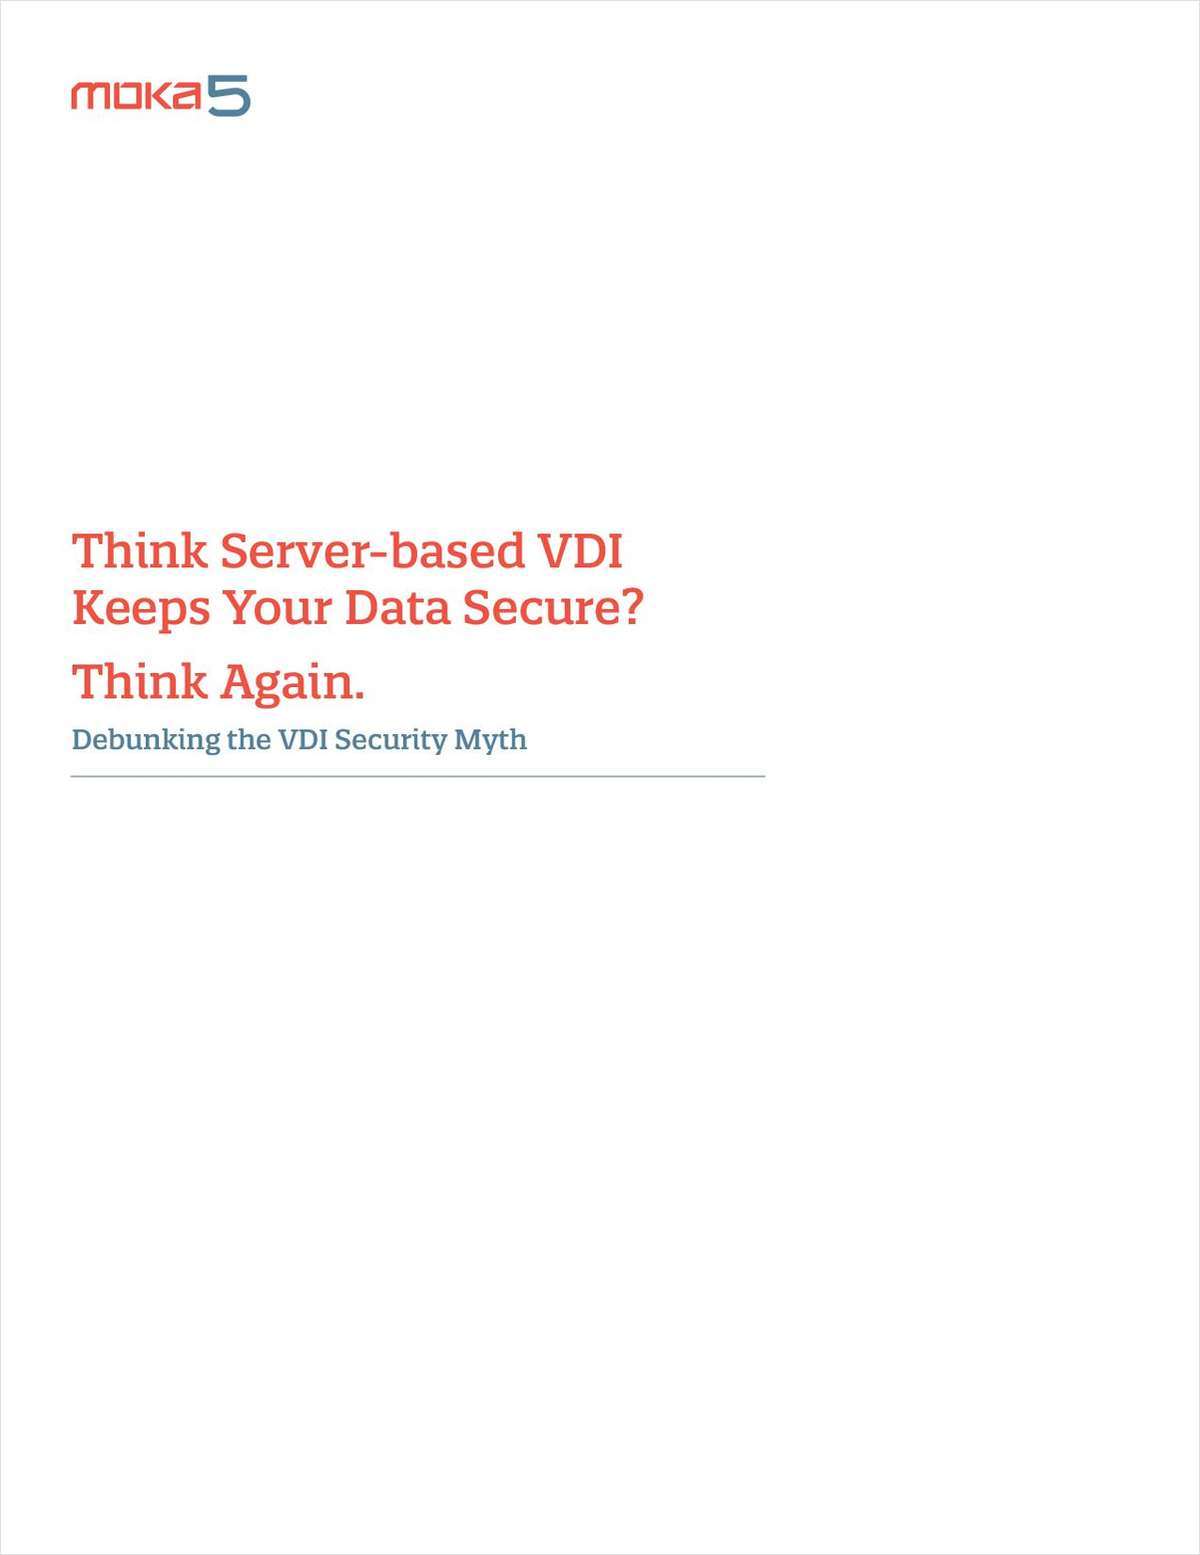 Think Server-based VDI Keeps Your Data Secure -- Think Again